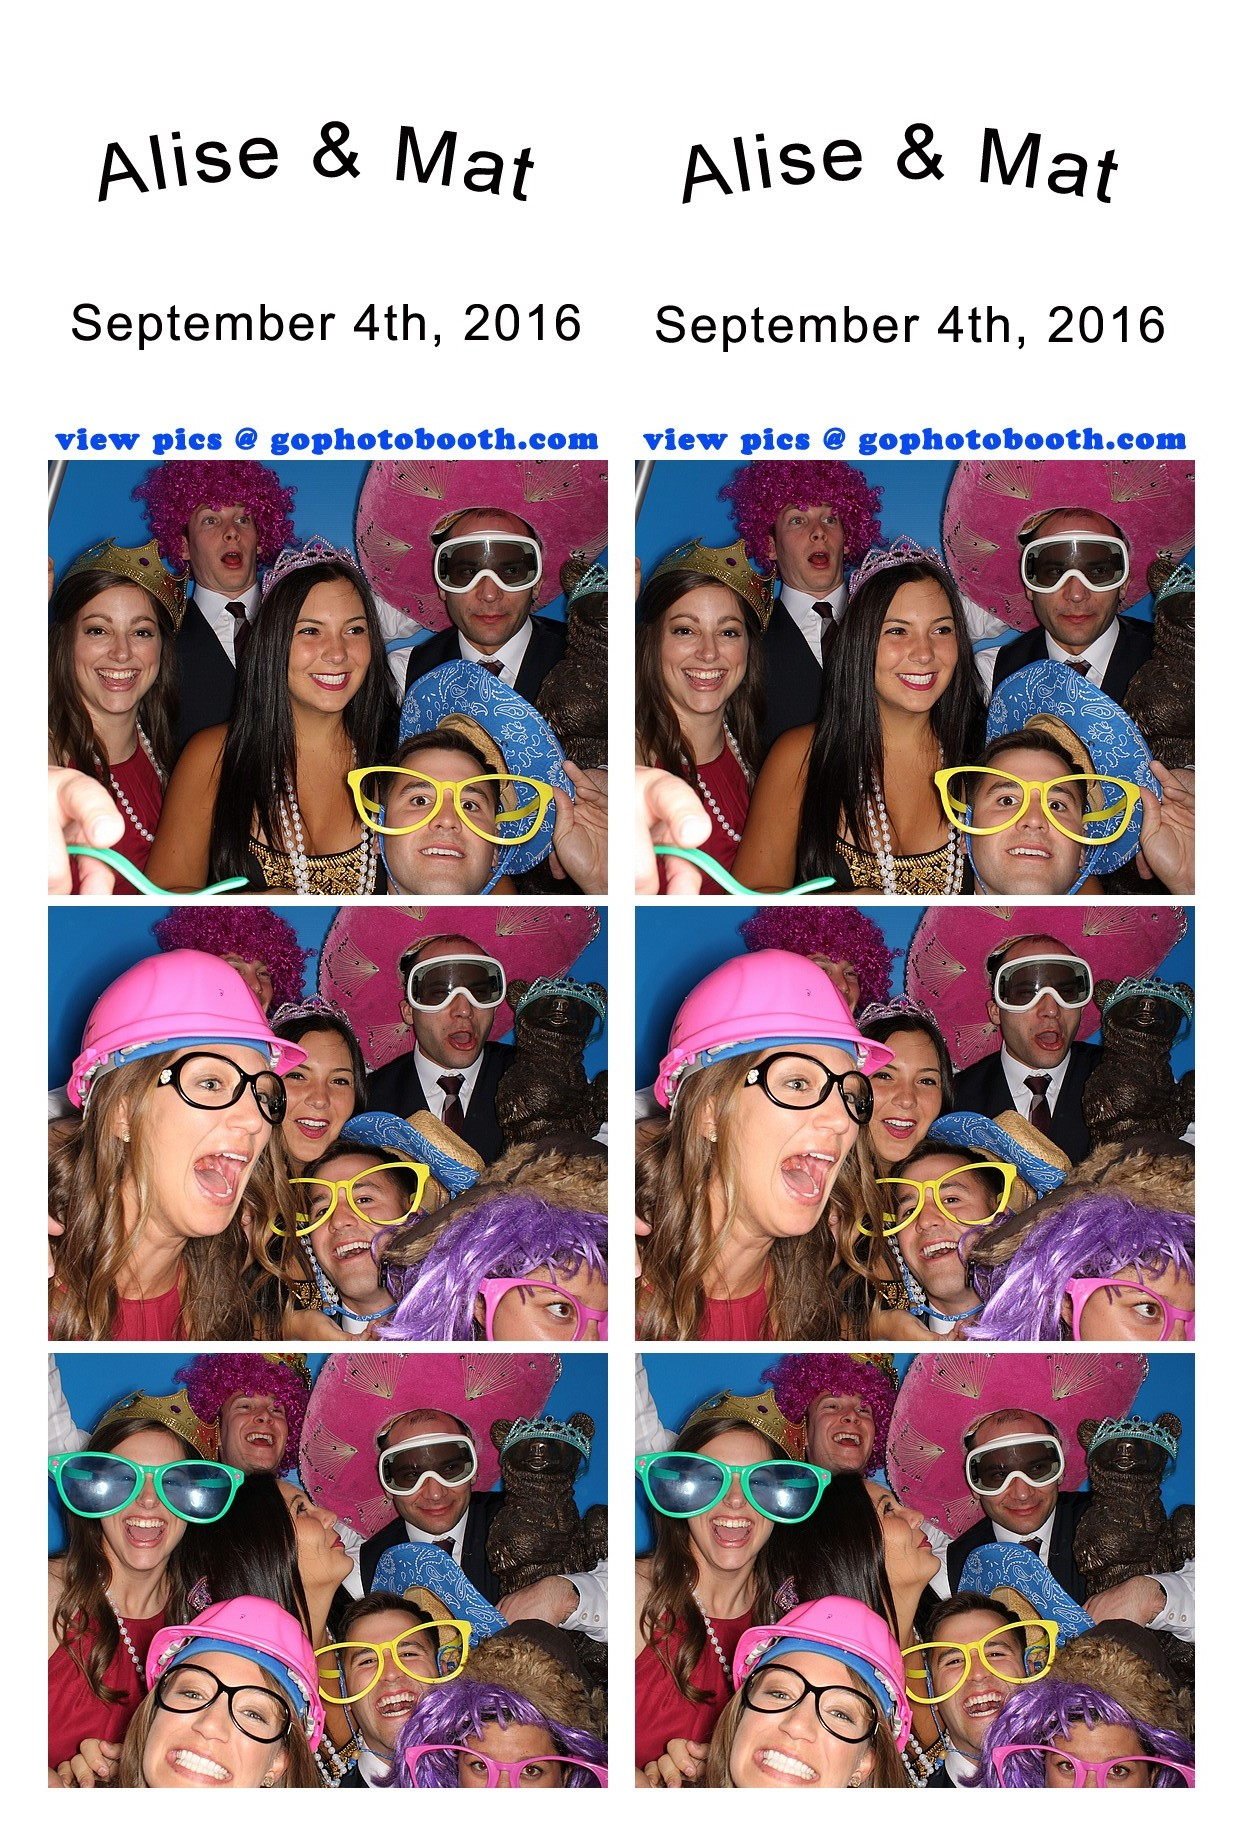 Alise & Mat's Vail Wedding photo booth 09/04/16